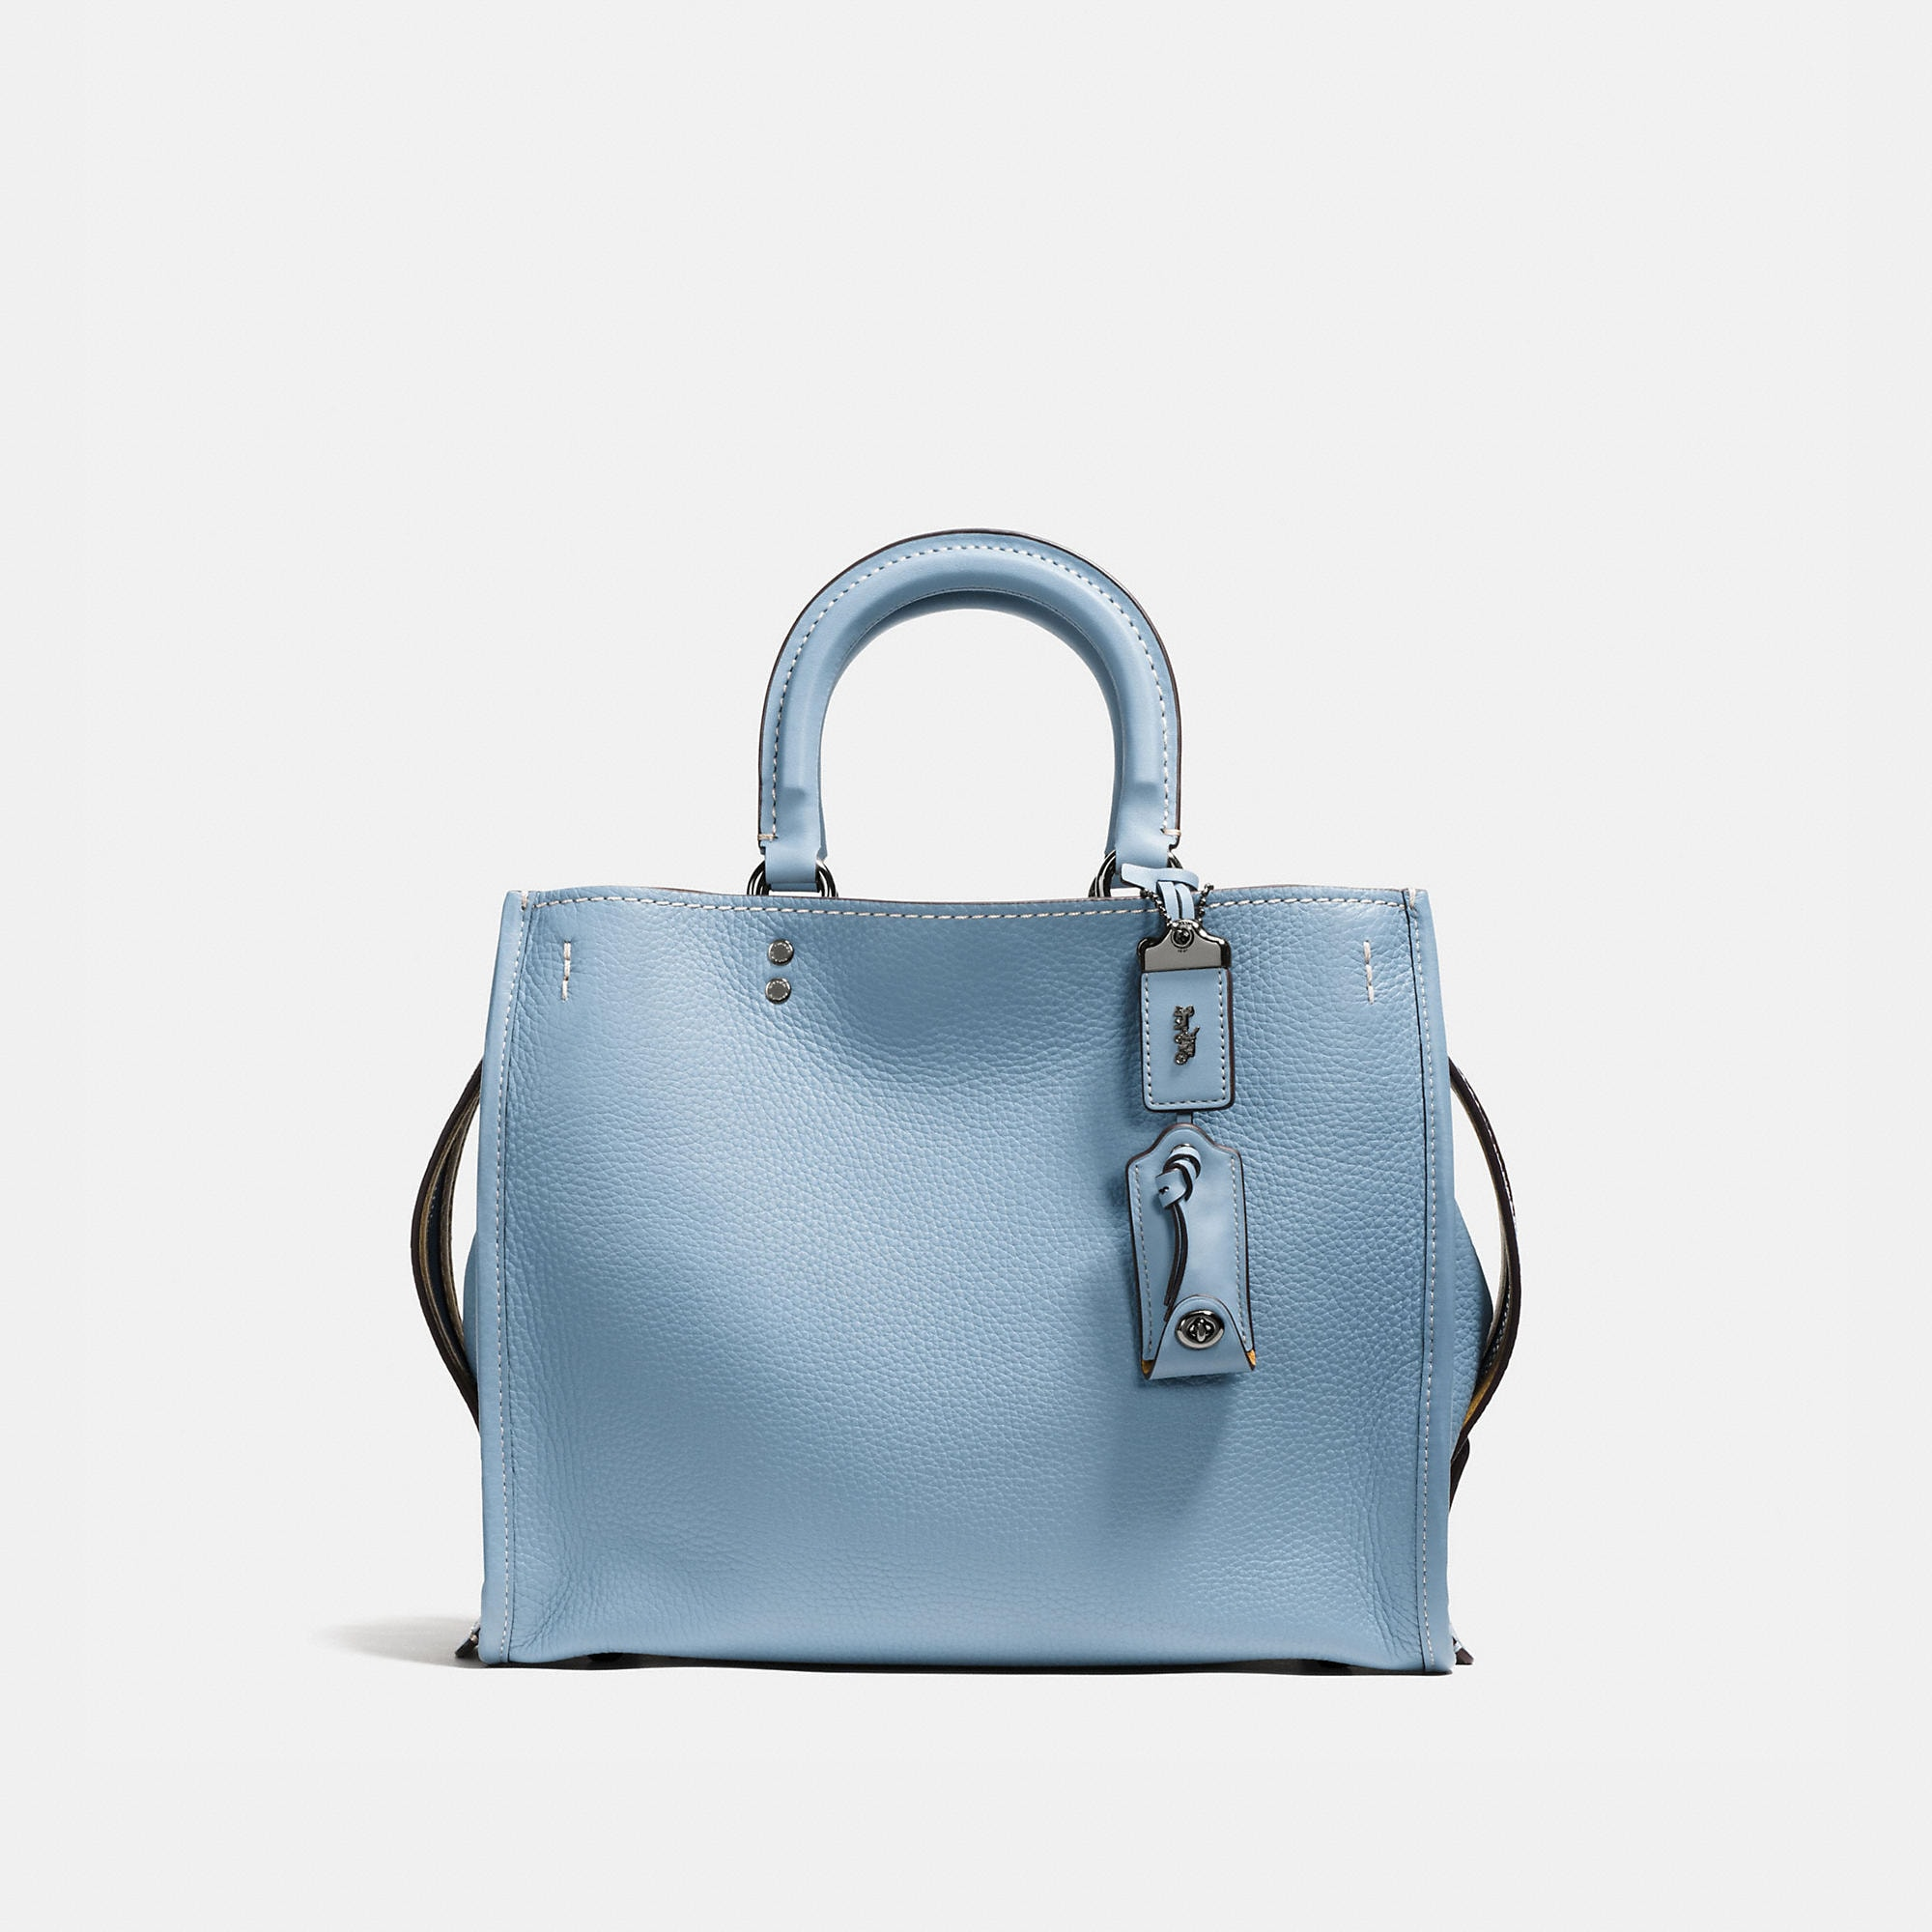 Coach Rogue Bag In Glovetanned Pebble Leather